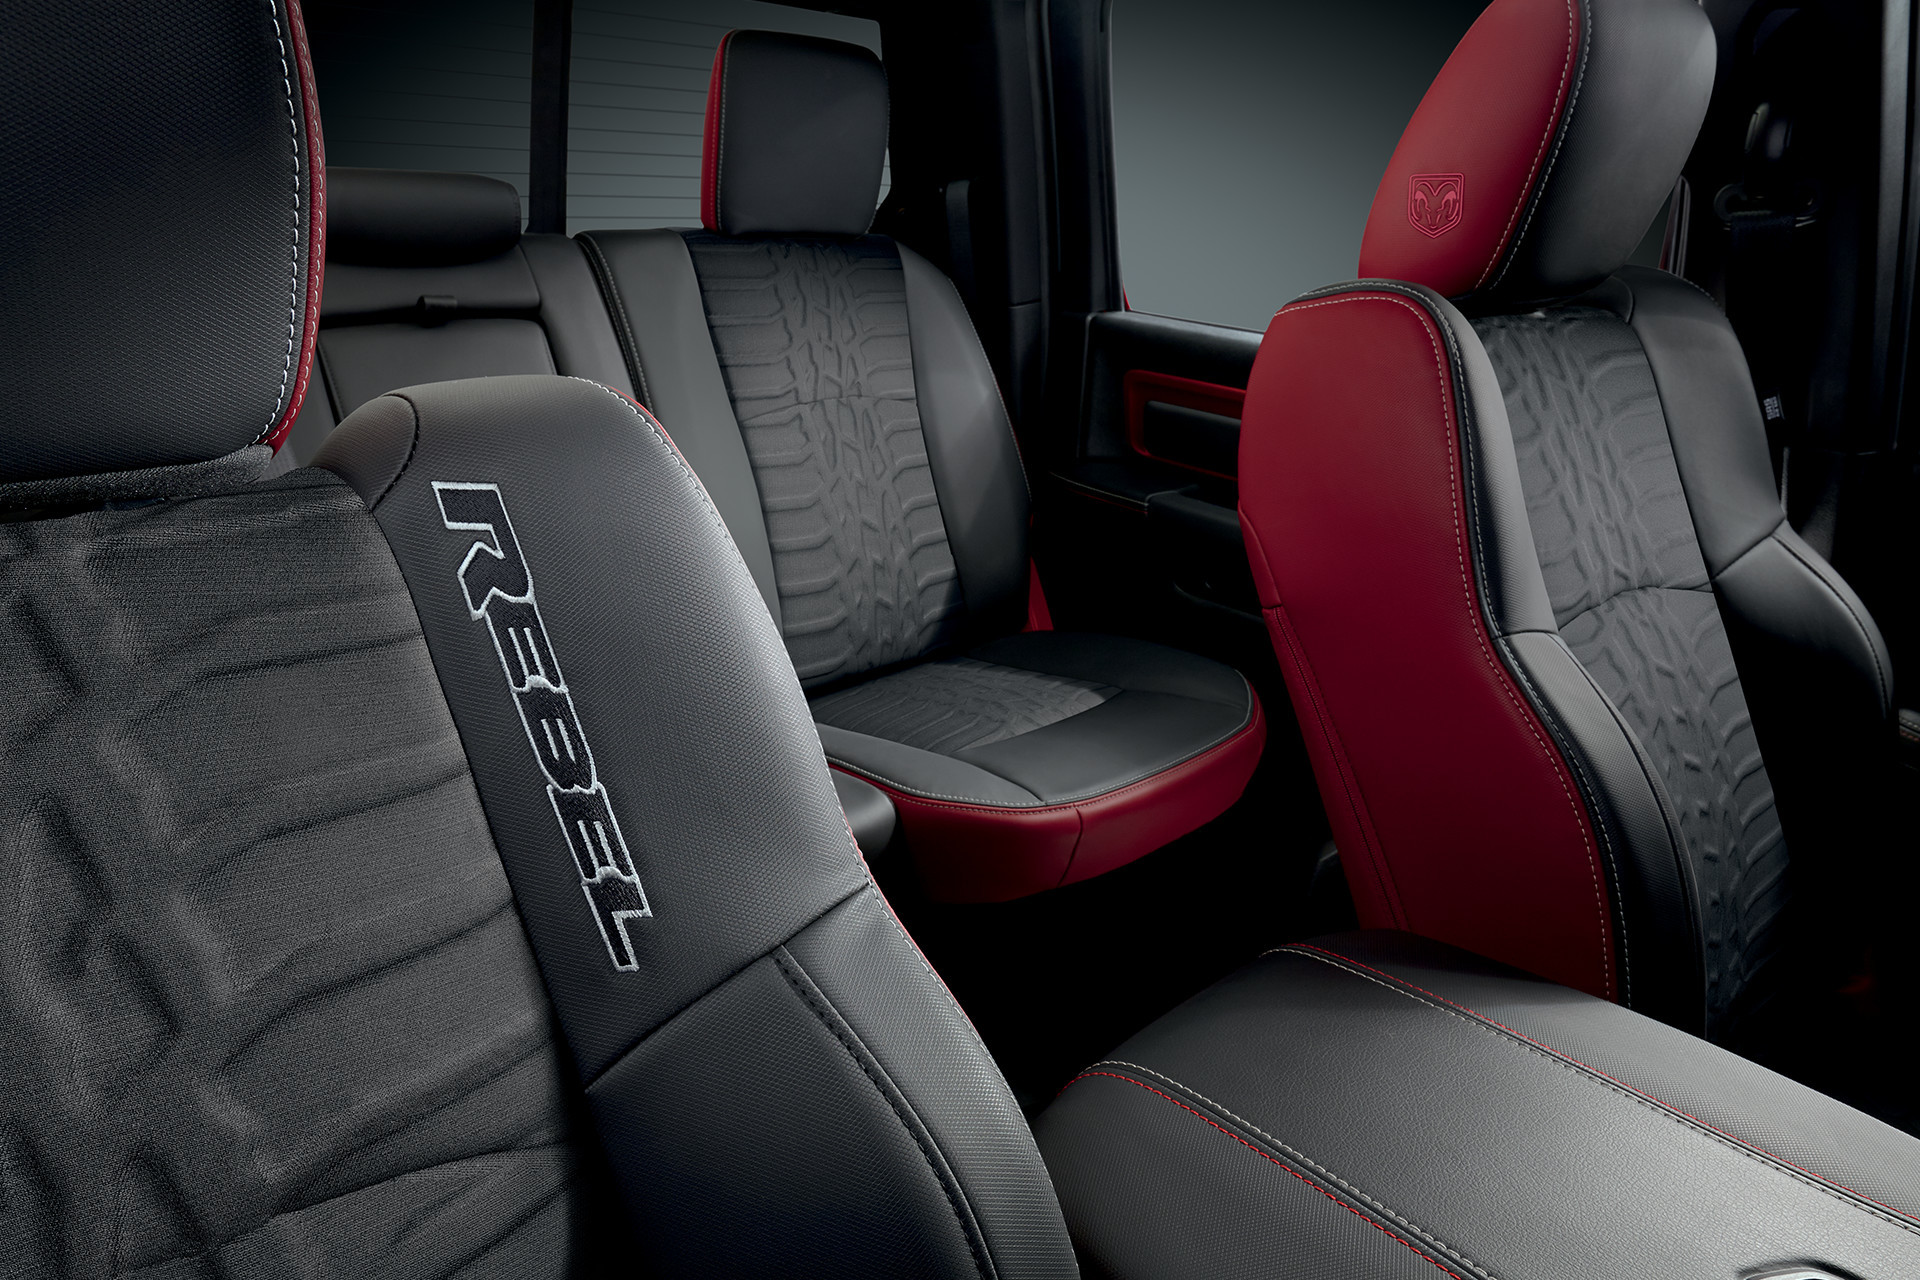 2018 RAM 1500 interior rebel seating